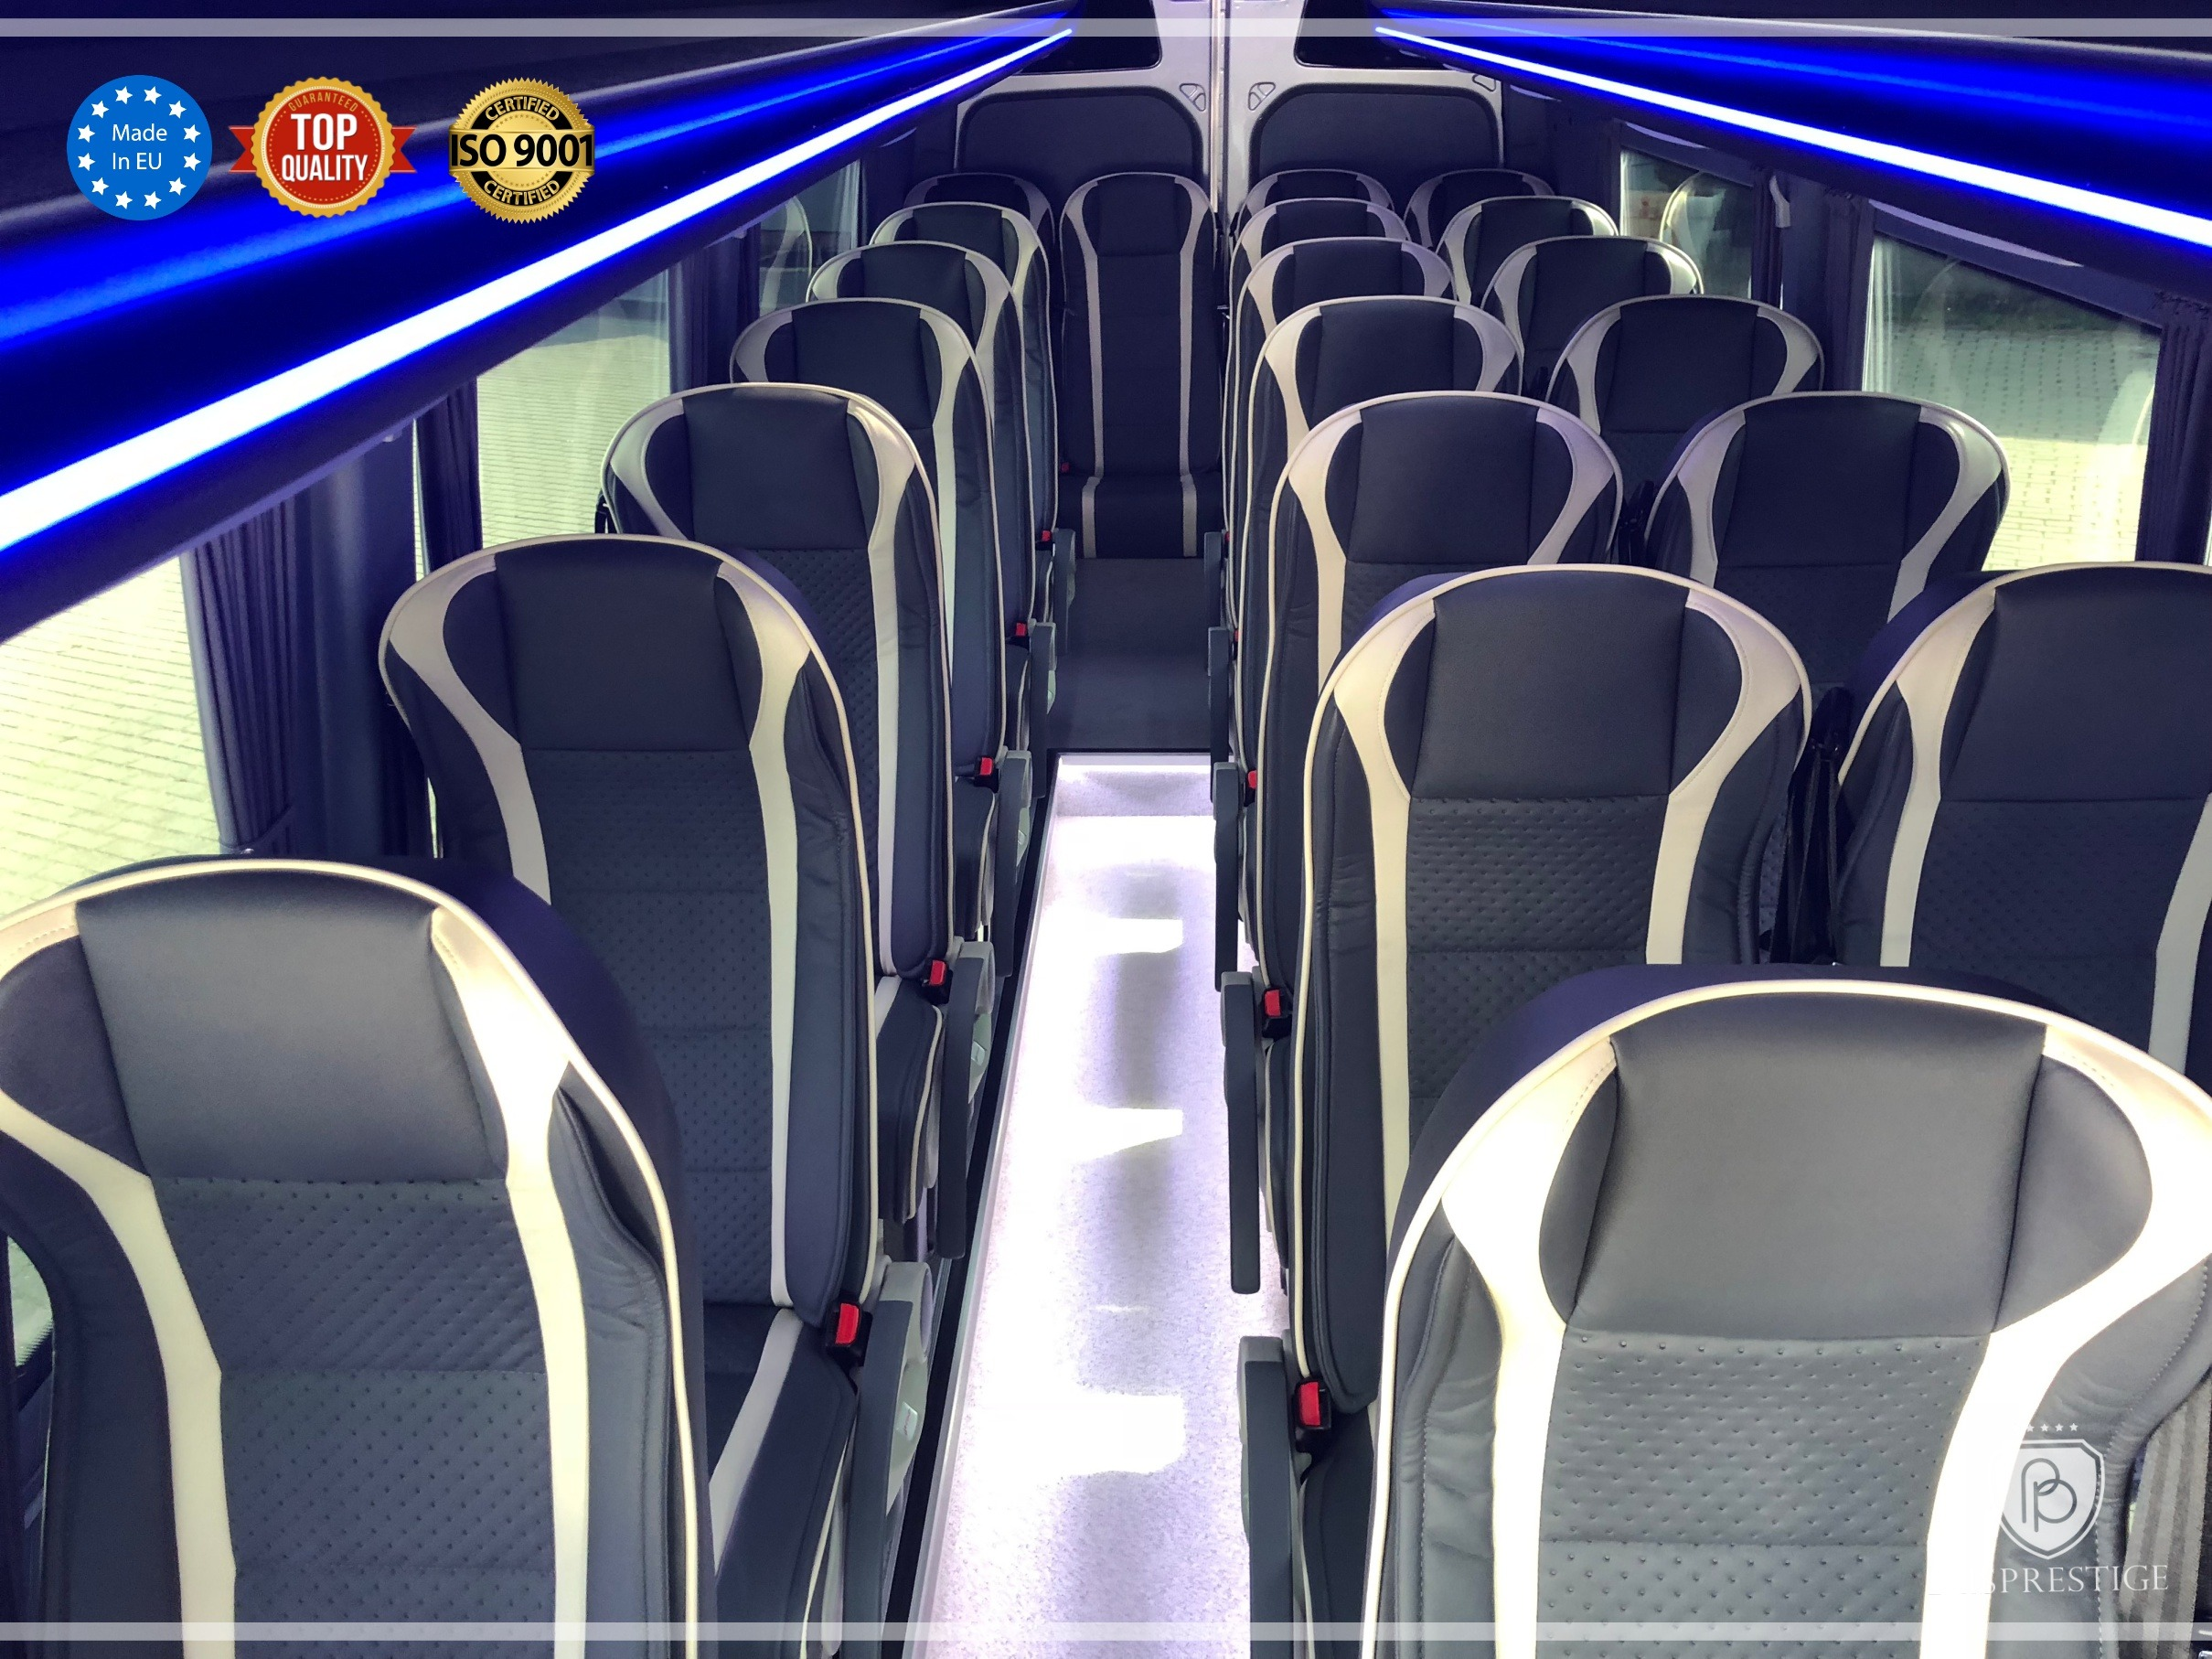 bus_prestige_sprinter_seats_view